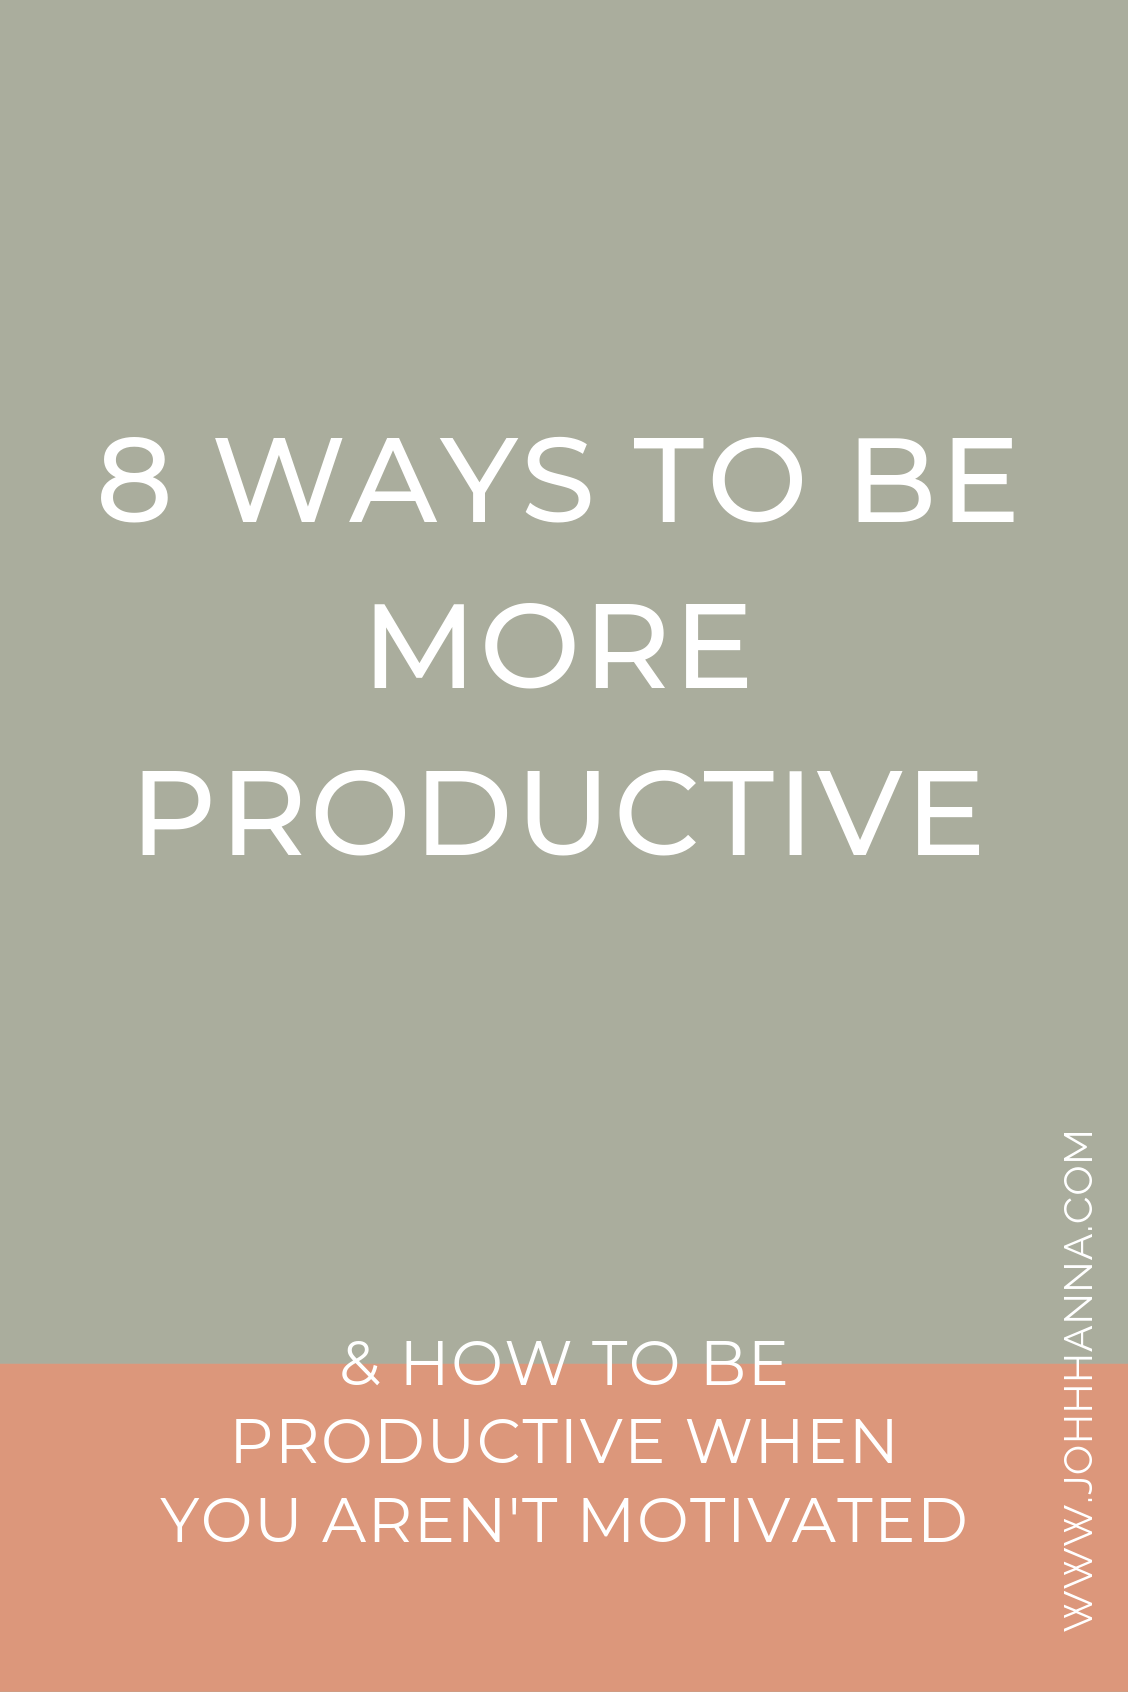 8-ways-to-be-more-productive.png